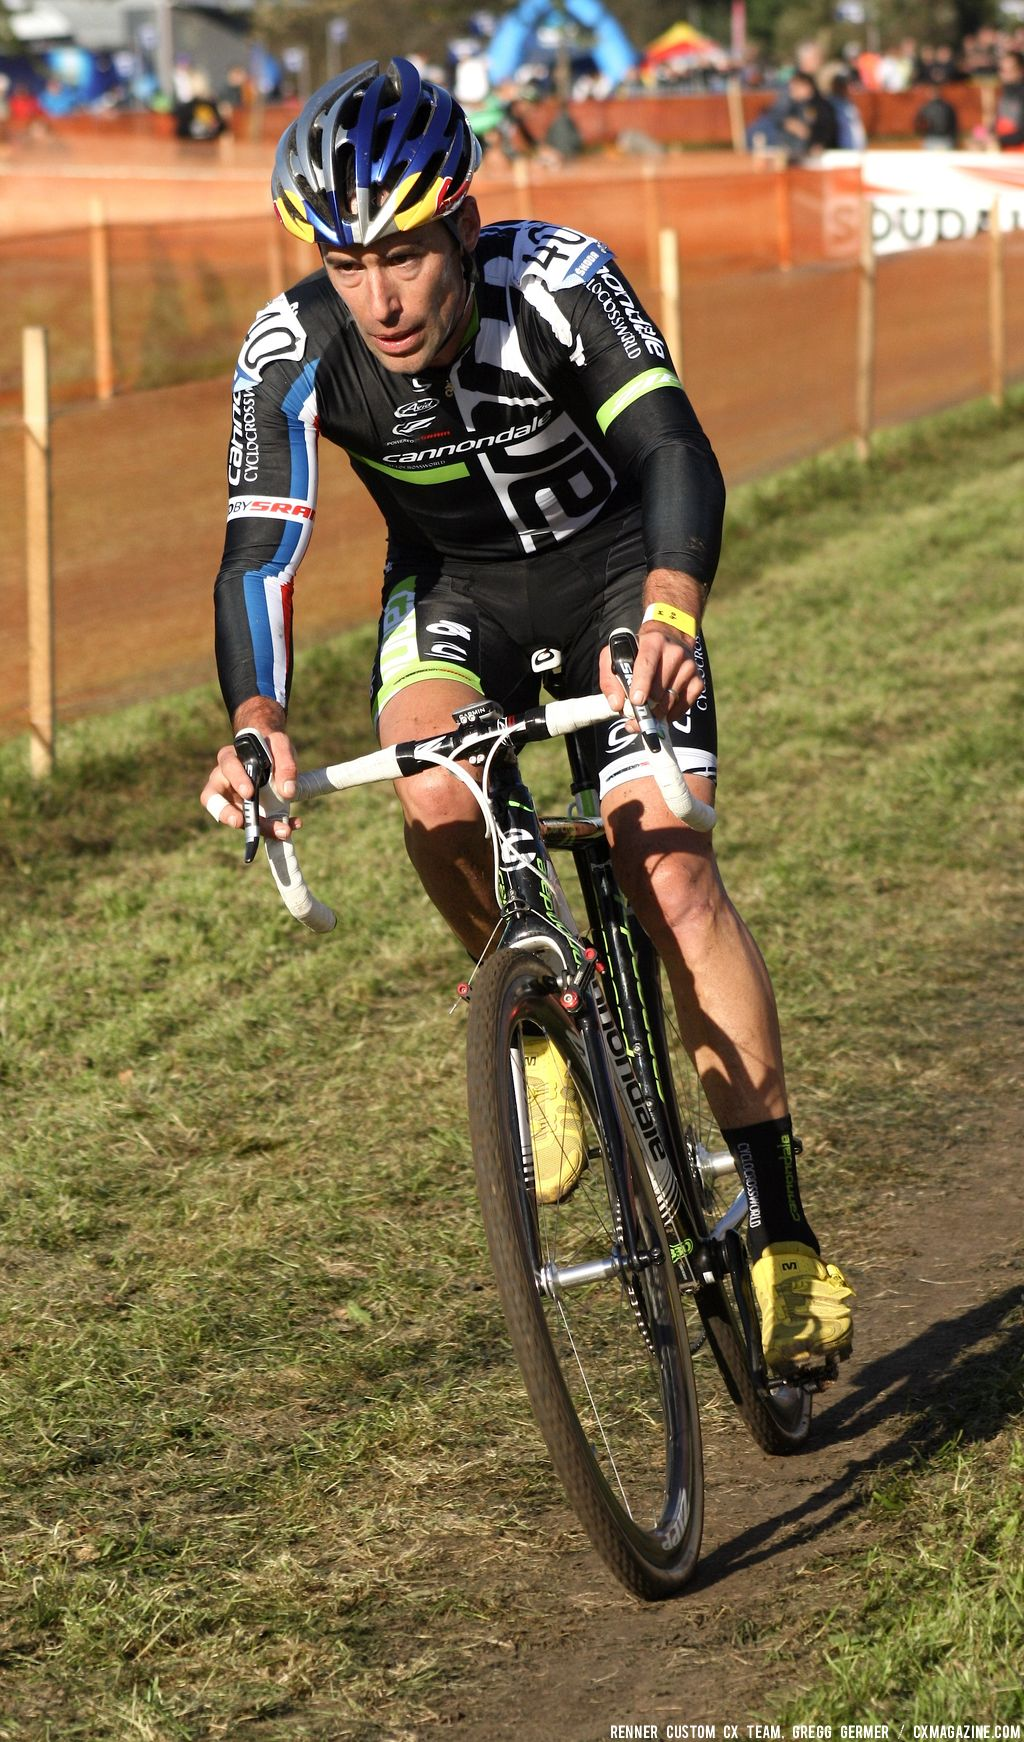 Johnson chases. © Renner Custom CX Team, Gregg Germer